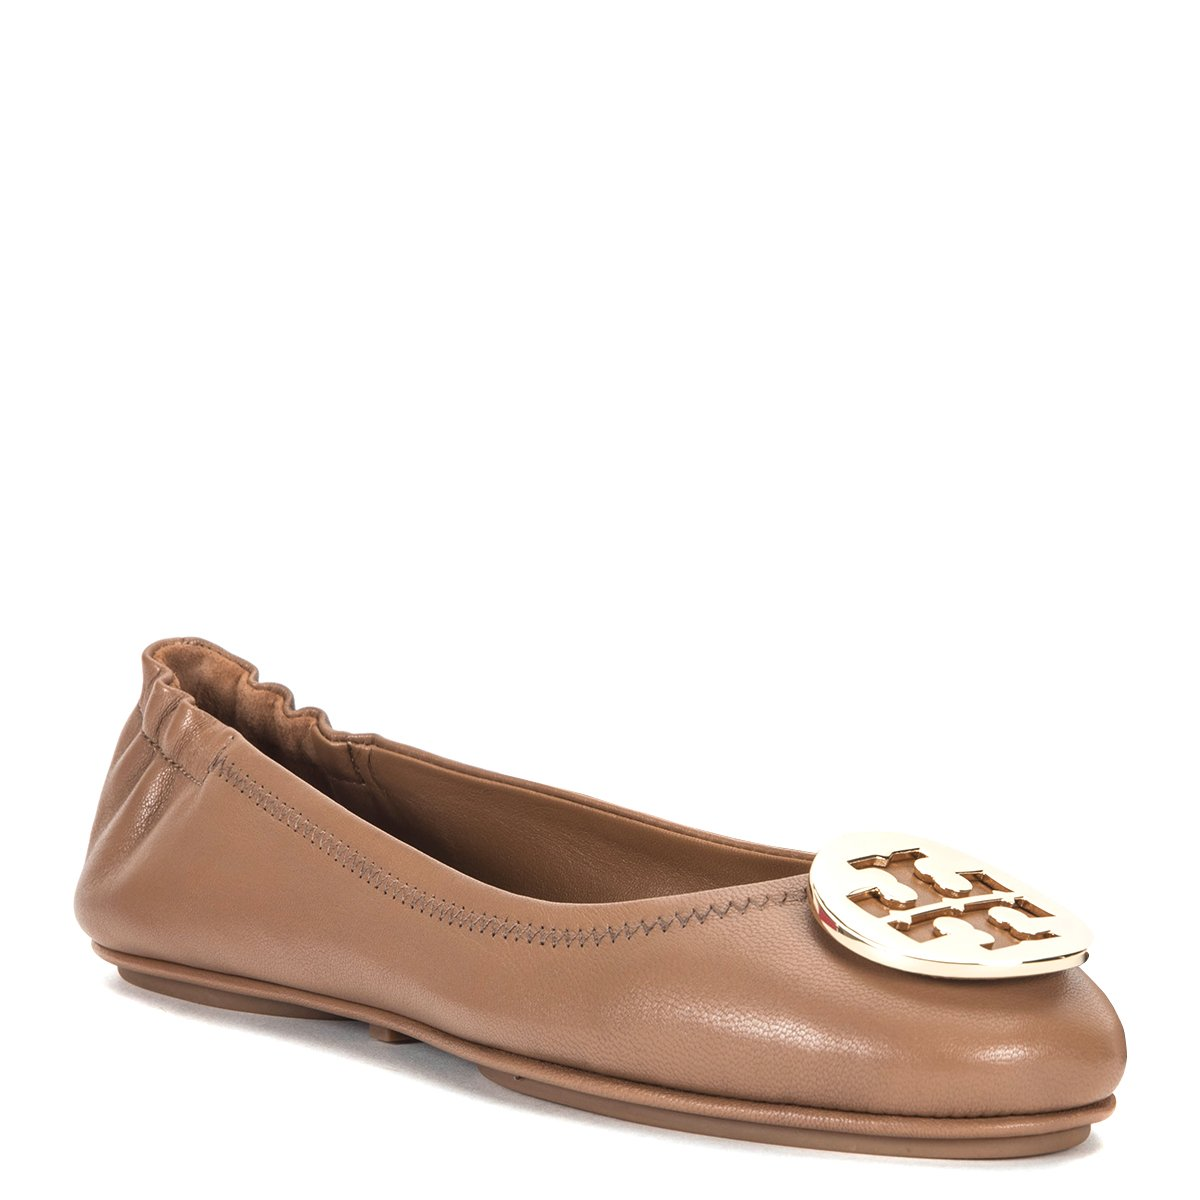 Tory Burch Women's Minnie Travel Ballet w/Metal Logo 32880-232, Royal Tan/Gold, 5 B(M) by Tory Burch